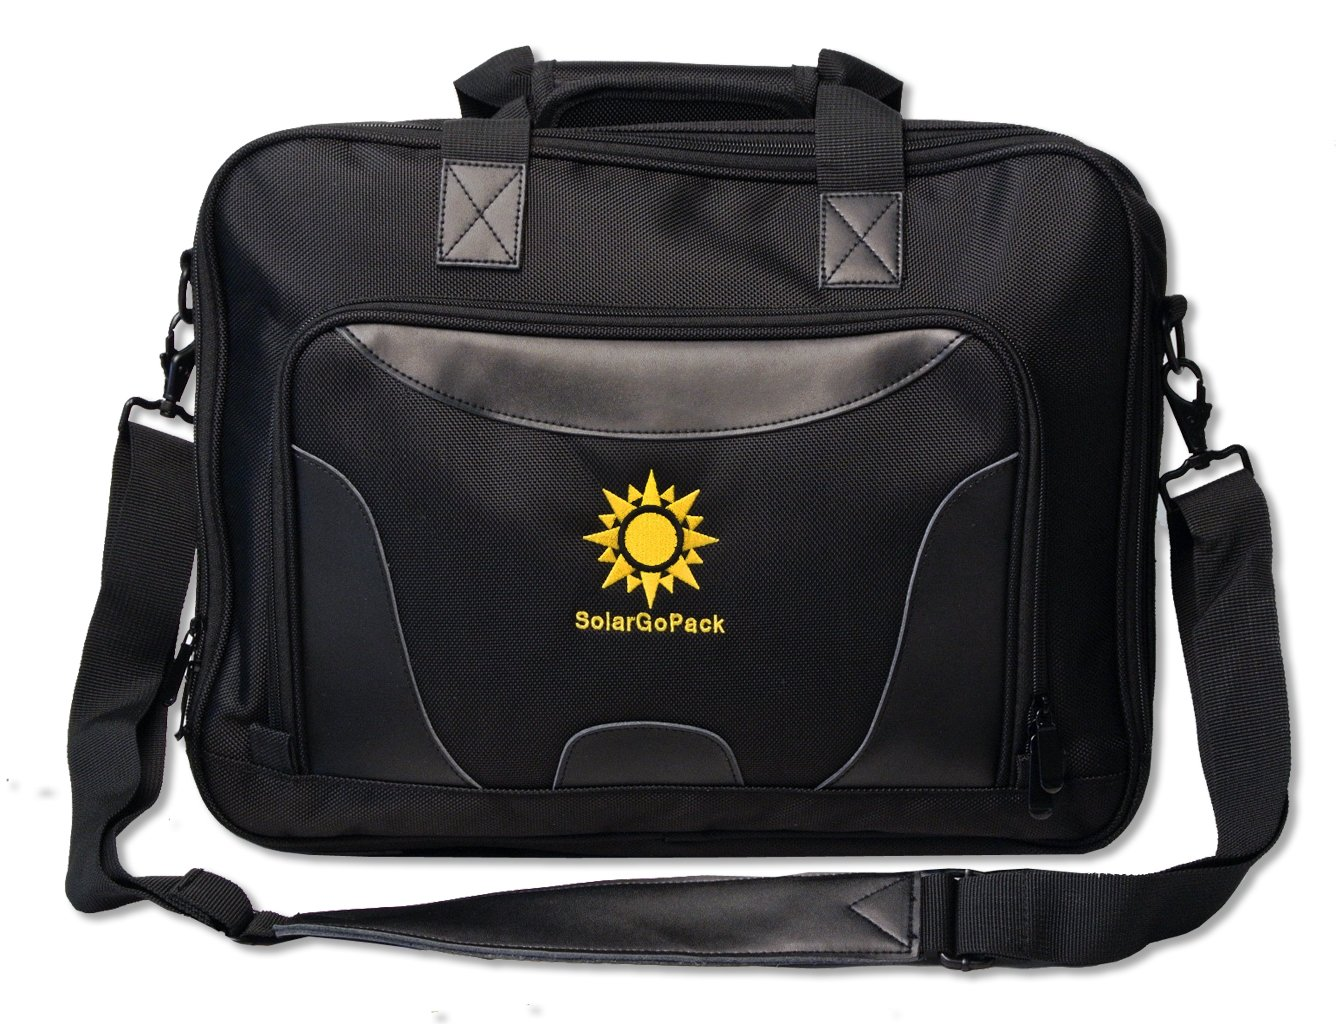 SolarGoPack, solar powered Professional Briefcase, has a 6.5 watt SunPower Solar Panel that charges all mobile devices, Take Your Power with You, comes with a 10k mAh Lithium Ion Battery